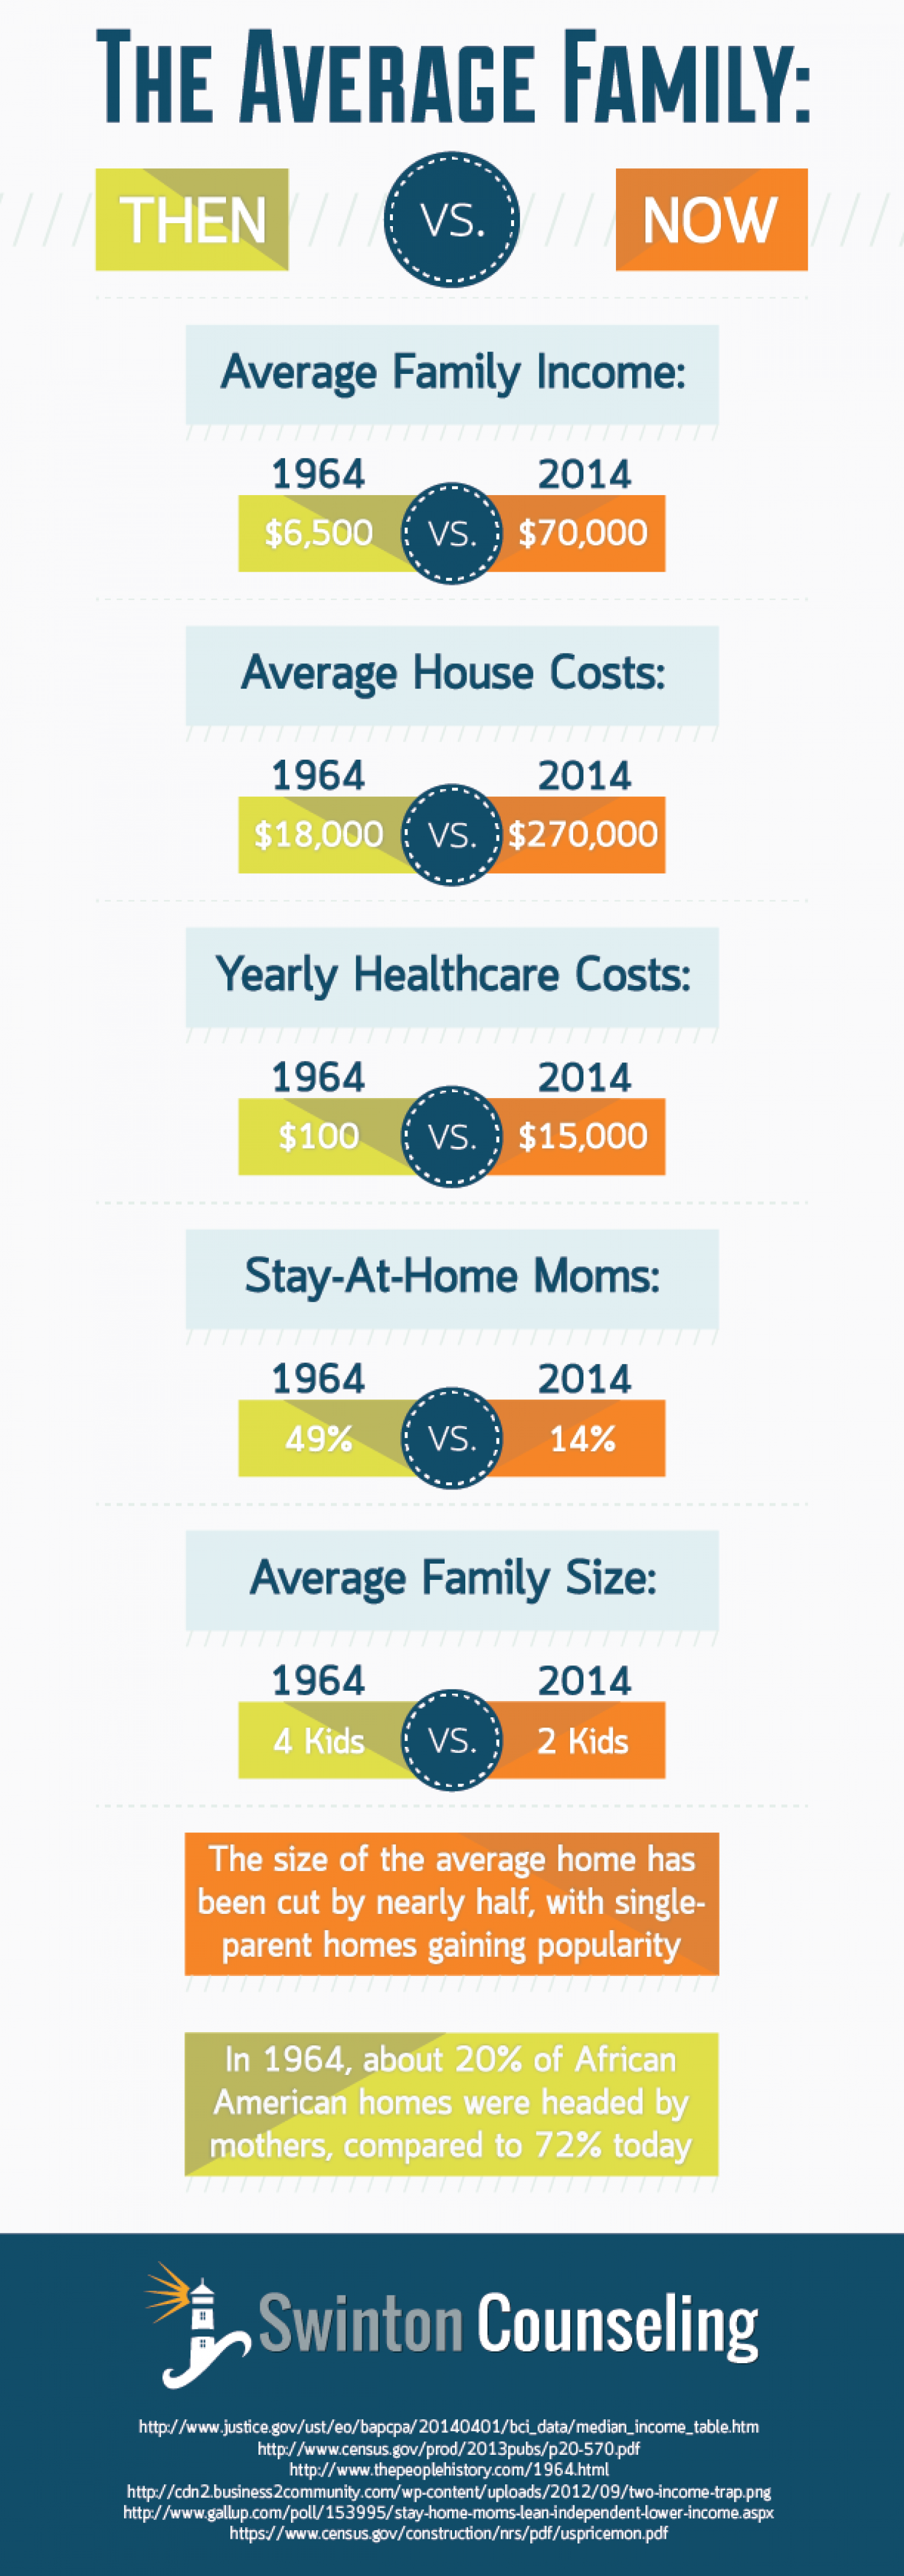 The Average Family: Then and Now Infographic